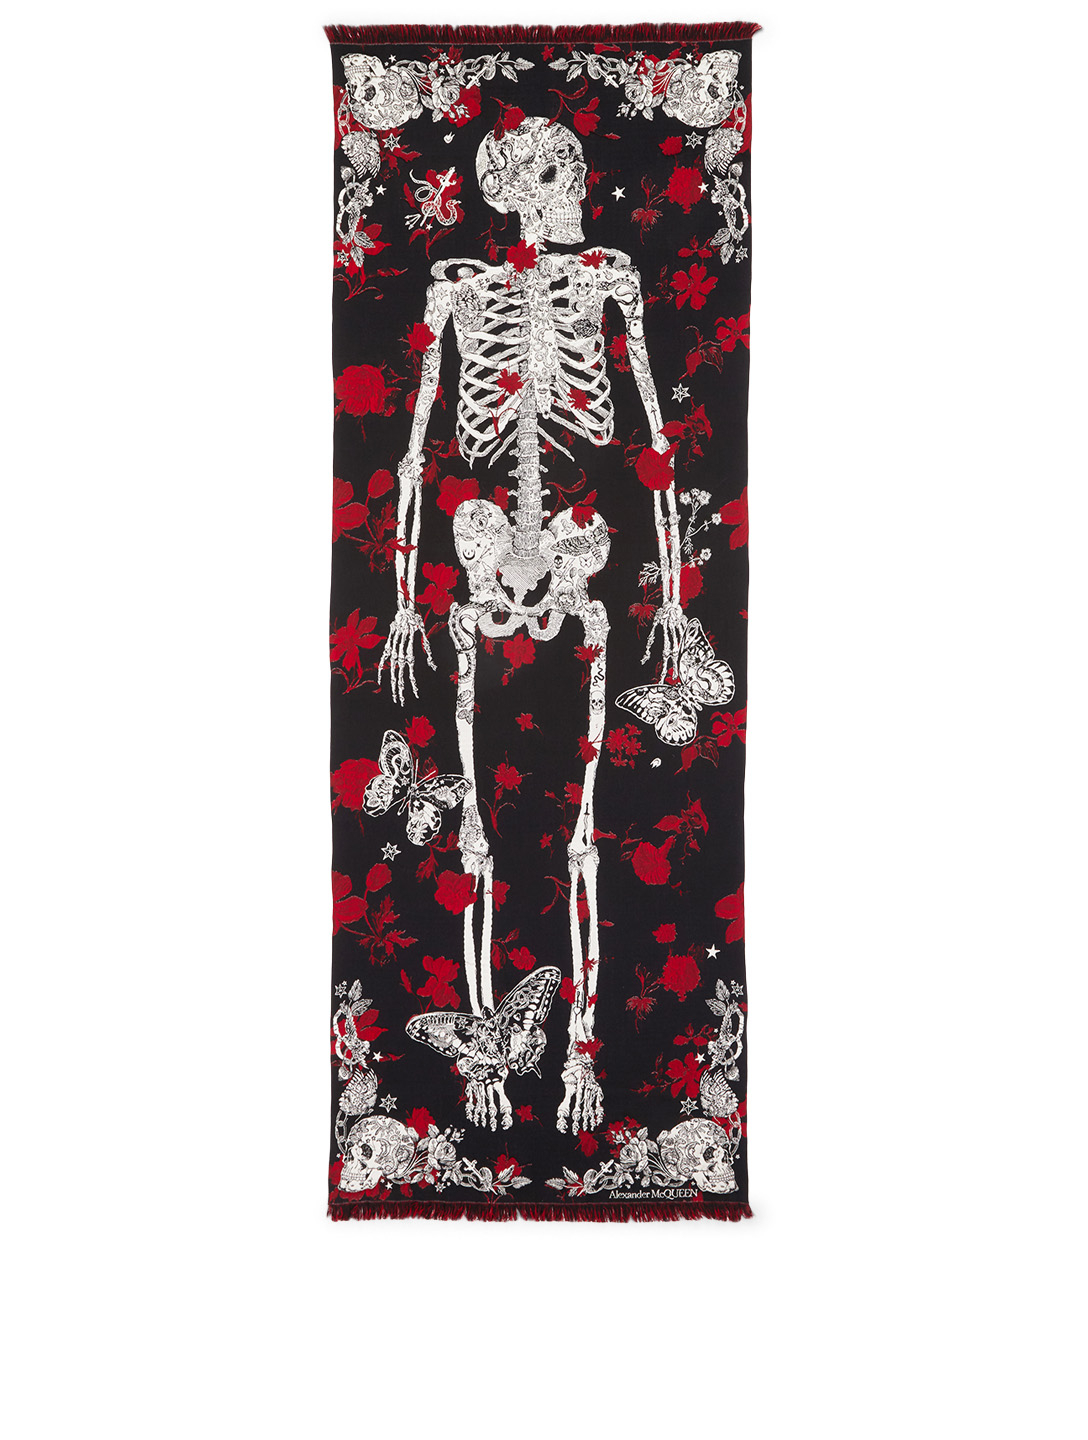 ALEXANDER MCQUEEN Tattoo Skeleton Scarf Women's Black